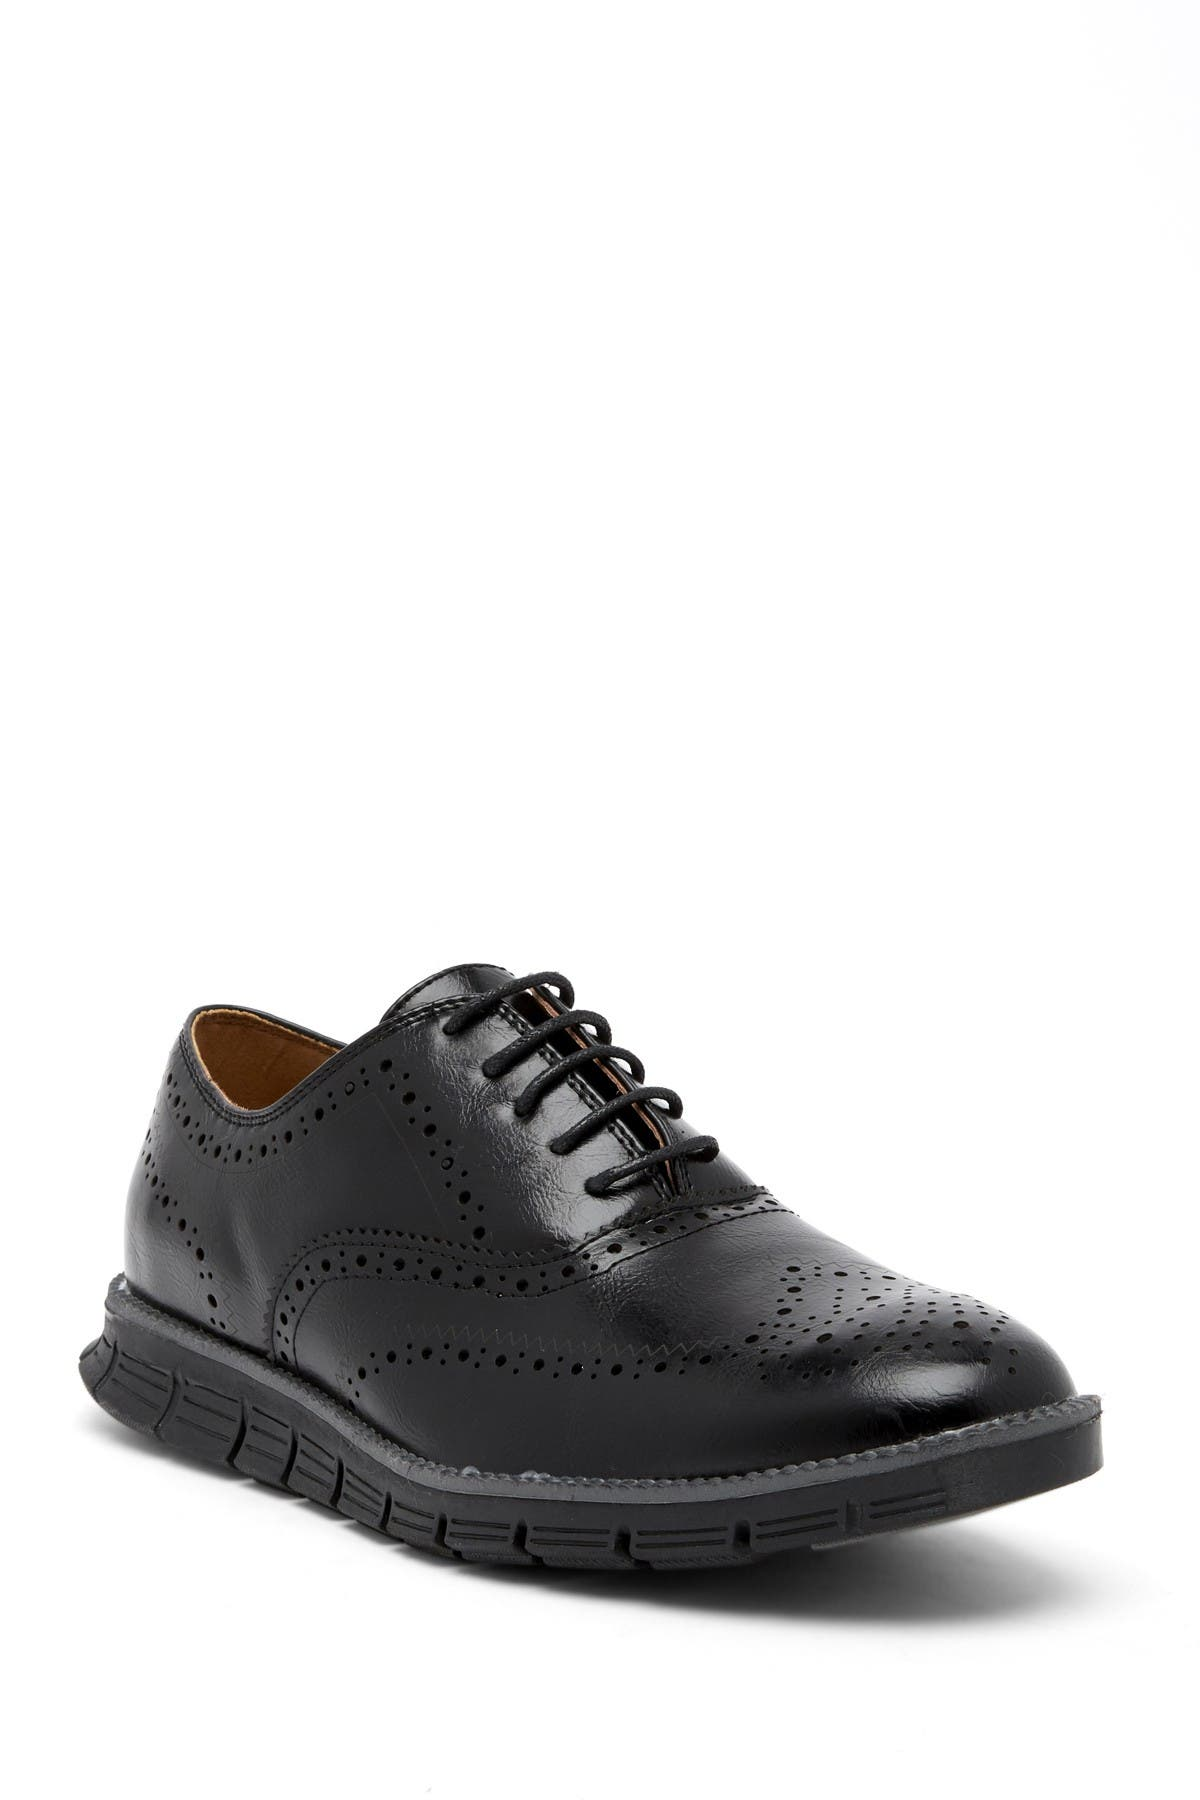 Image of Deer Stags Benton Lace-Up Brogue Oxford - Wide Width Available